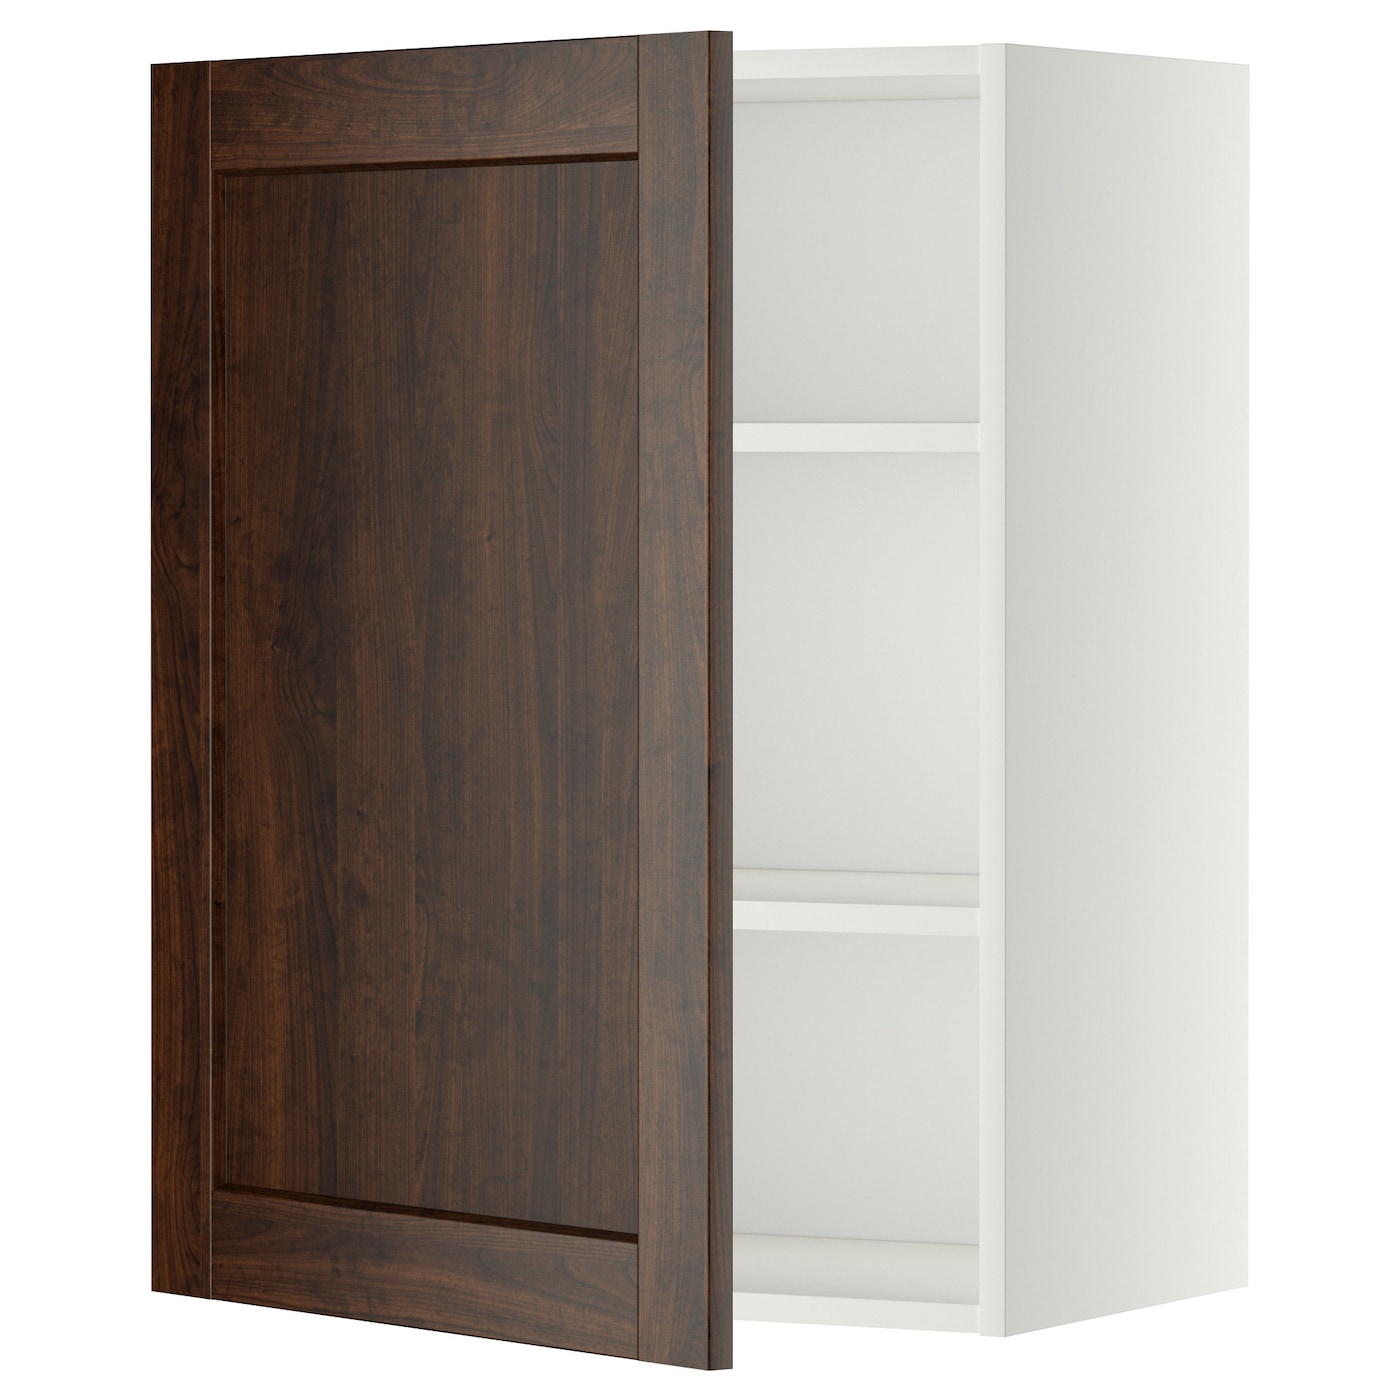 Metod Wall Cabinet With Shelves White Edserum Brown 60x80